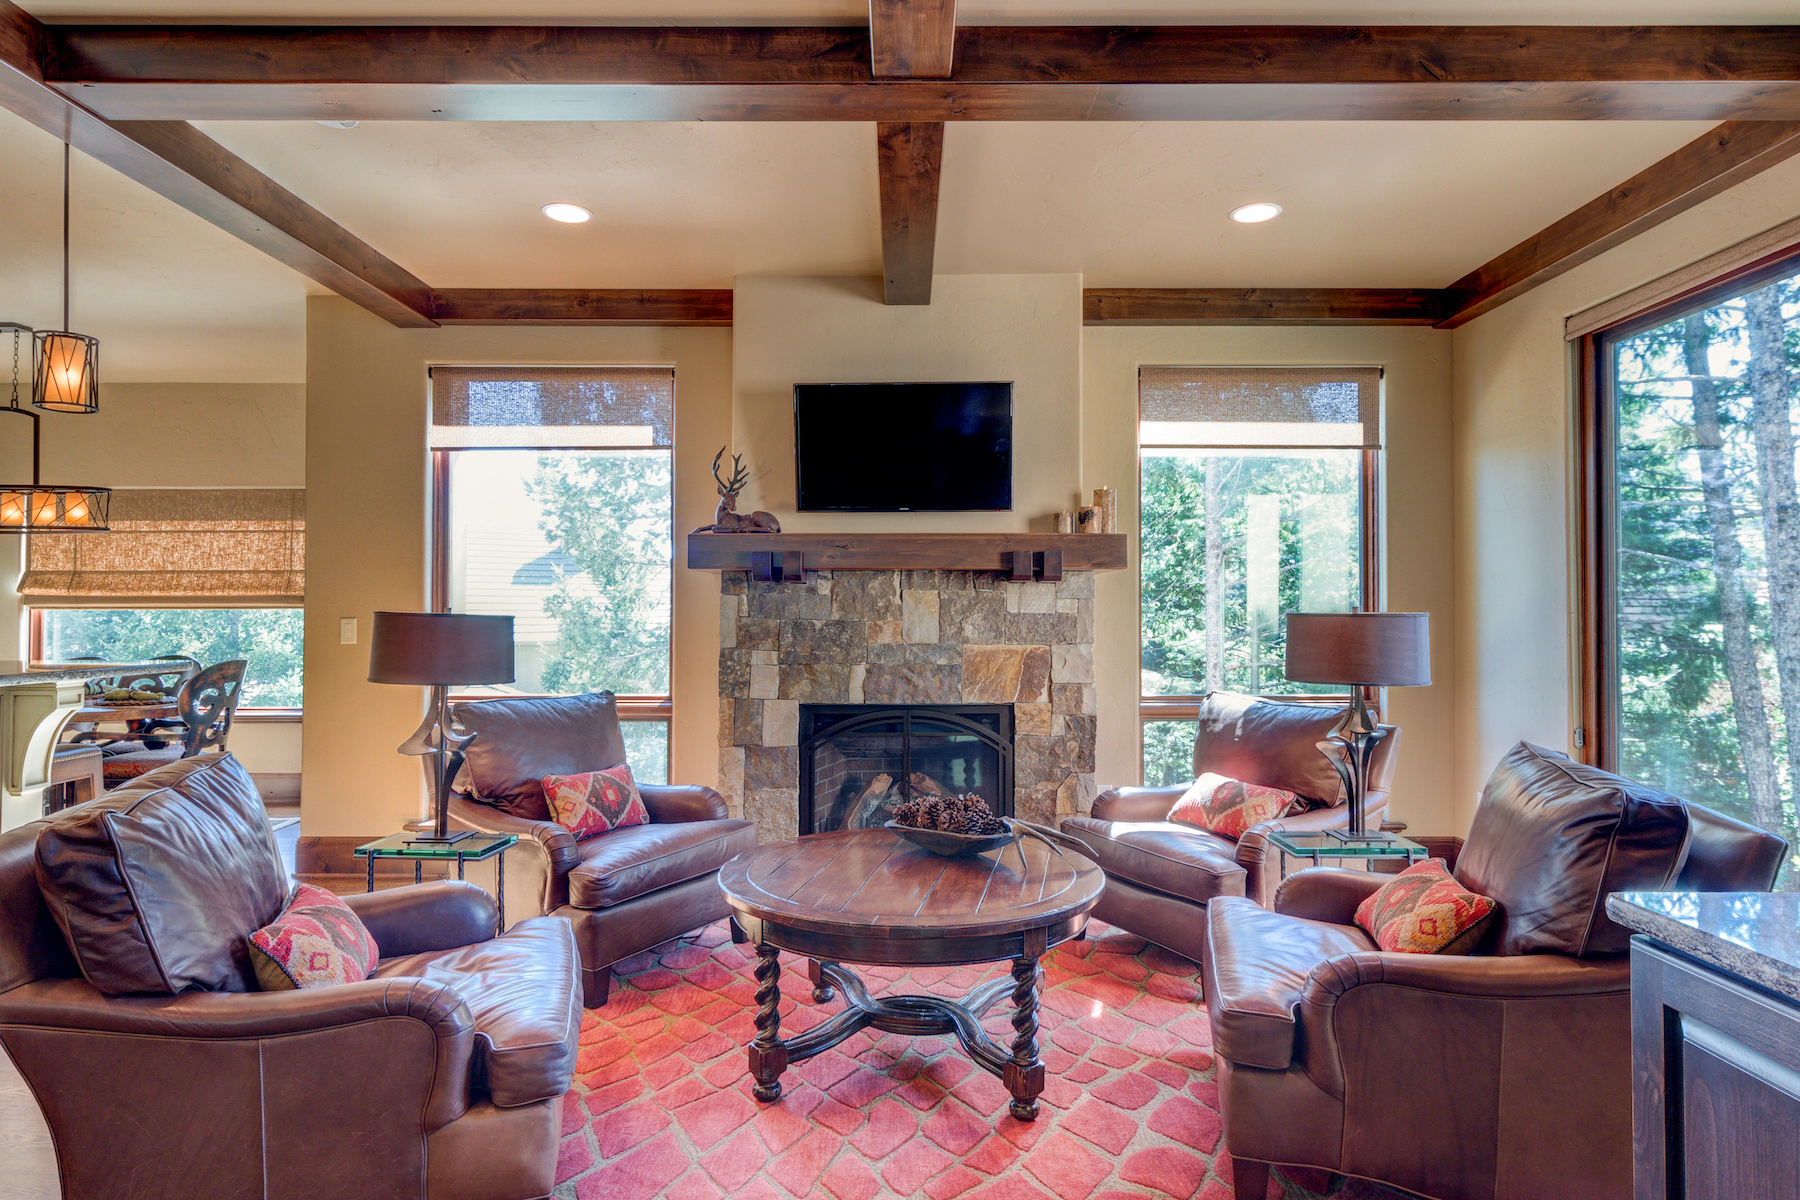 12 - Family Room with Fireplace, Beamed Ceiling, and Wet Bar.jpg